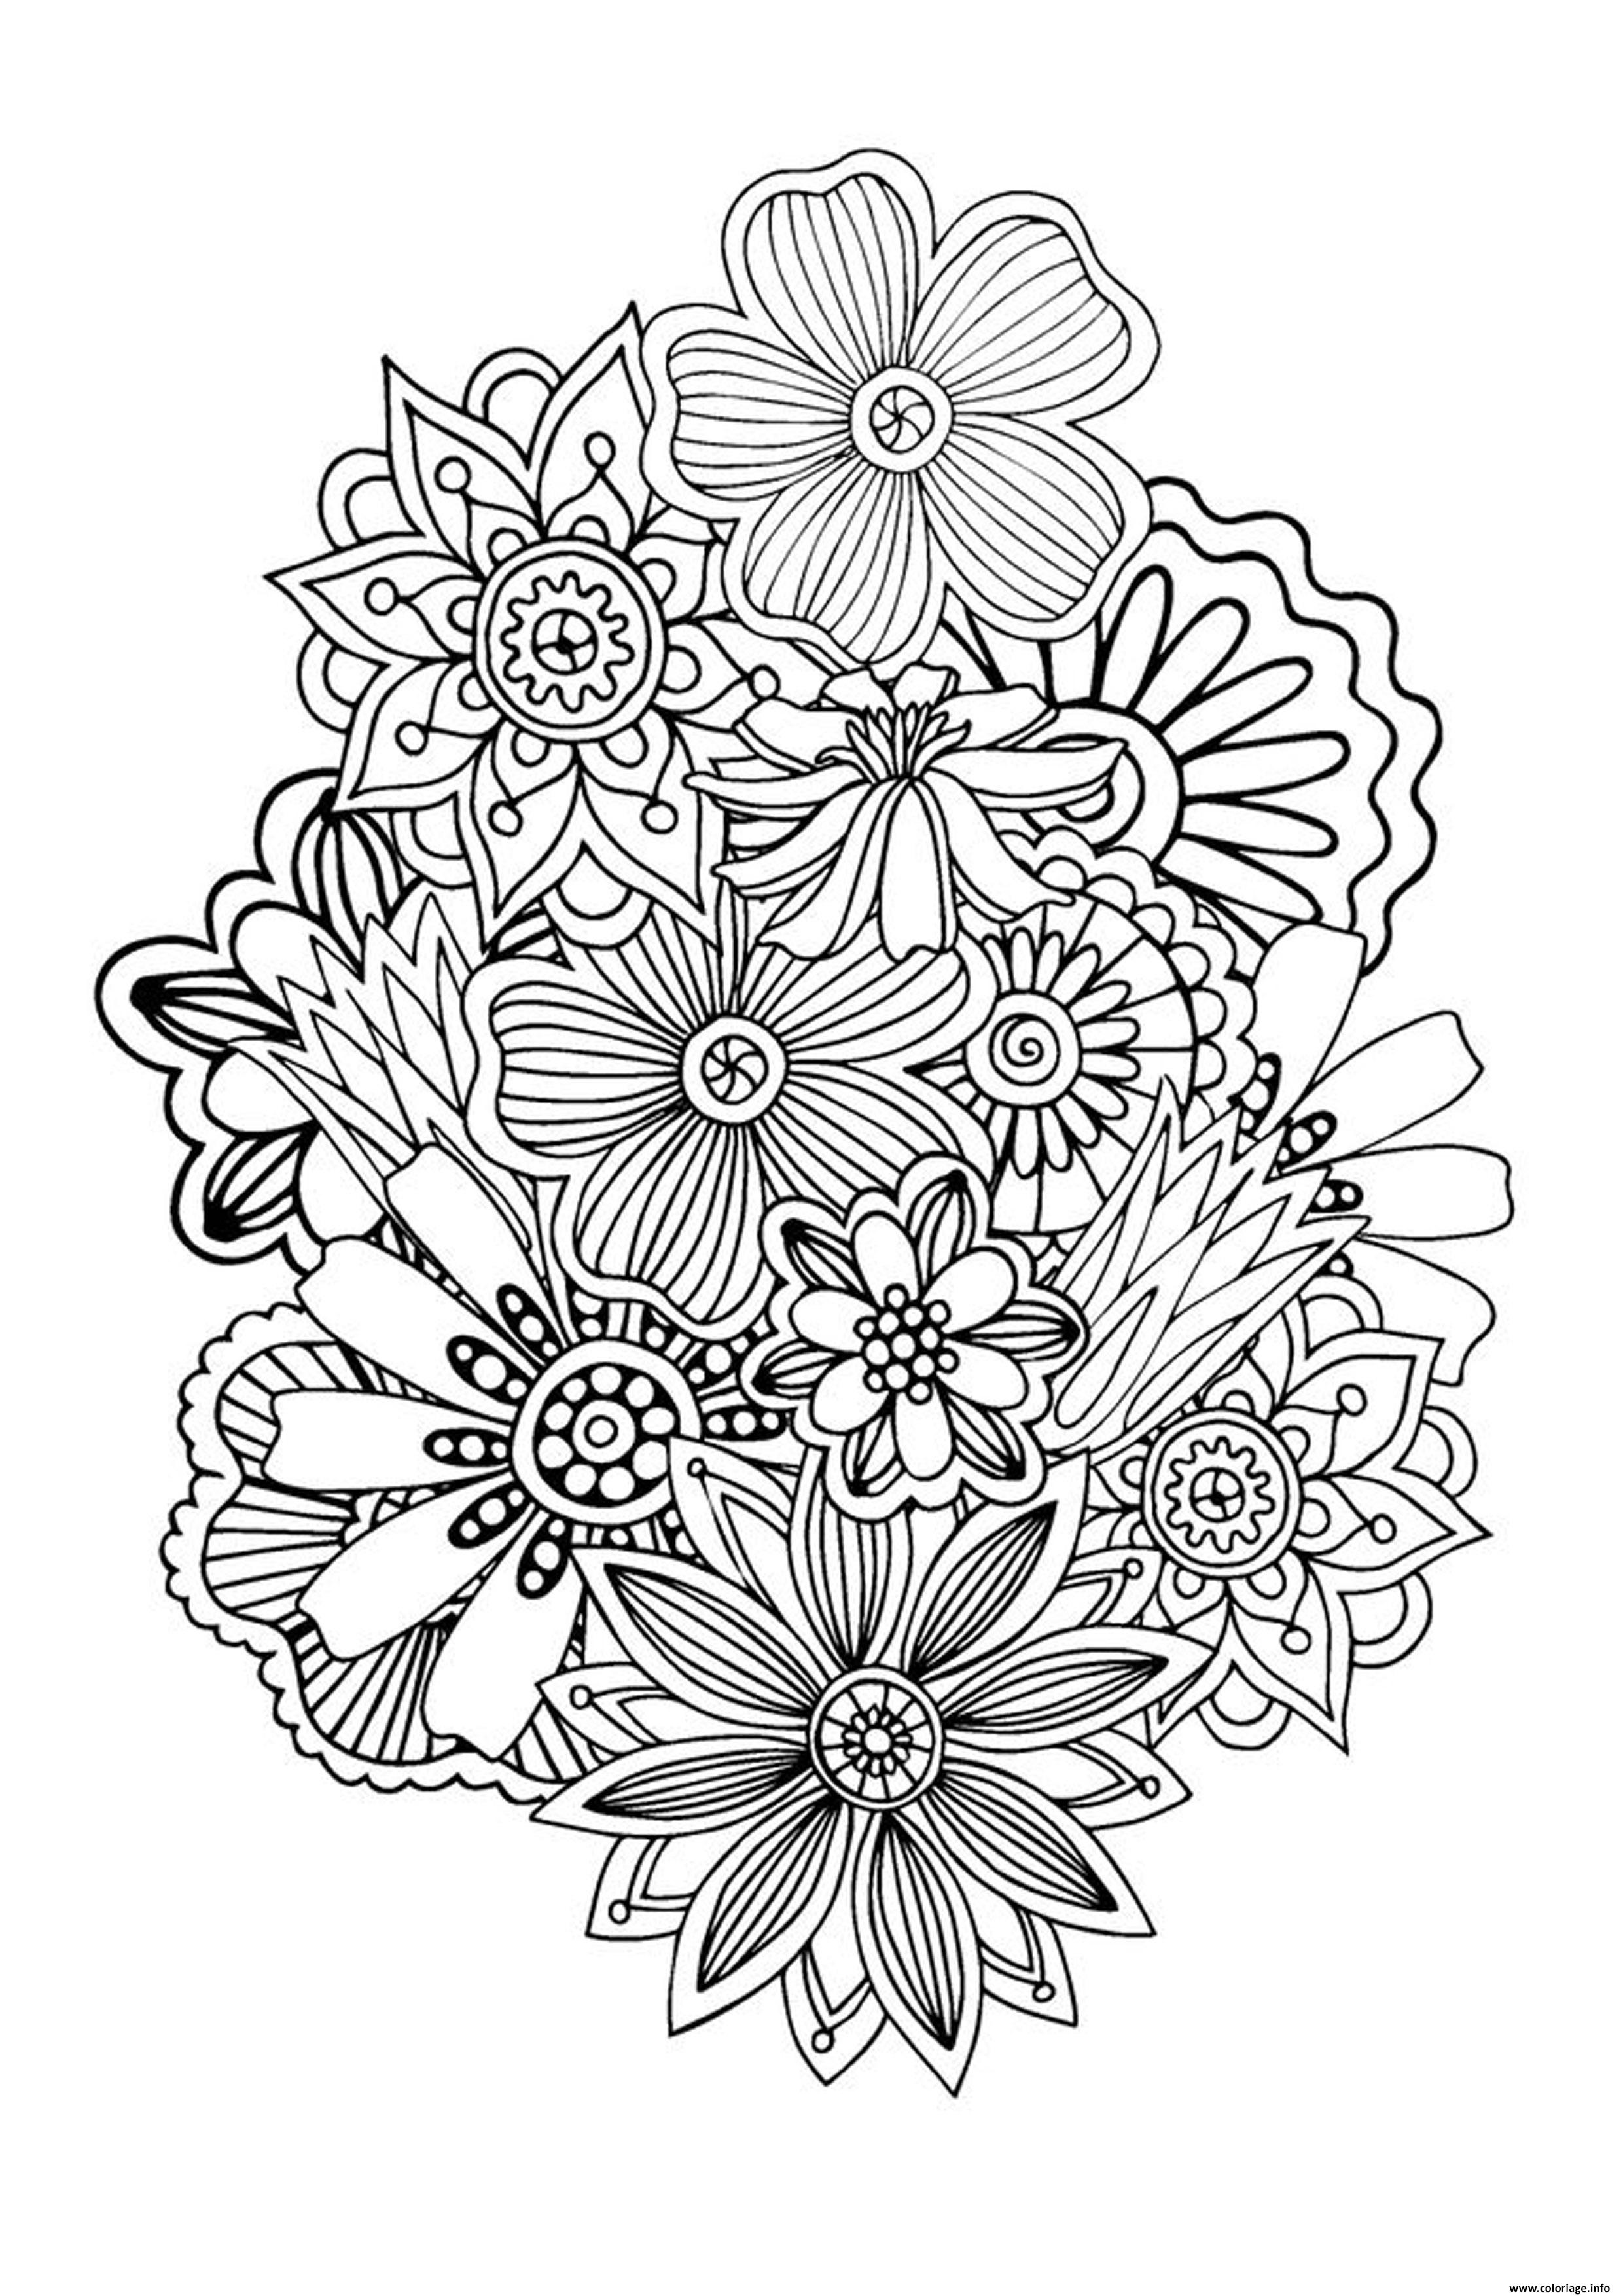 Dessin zen antistress abstract pattern flowers by juliasnegireva Coloriage Gratuit à Imprimer